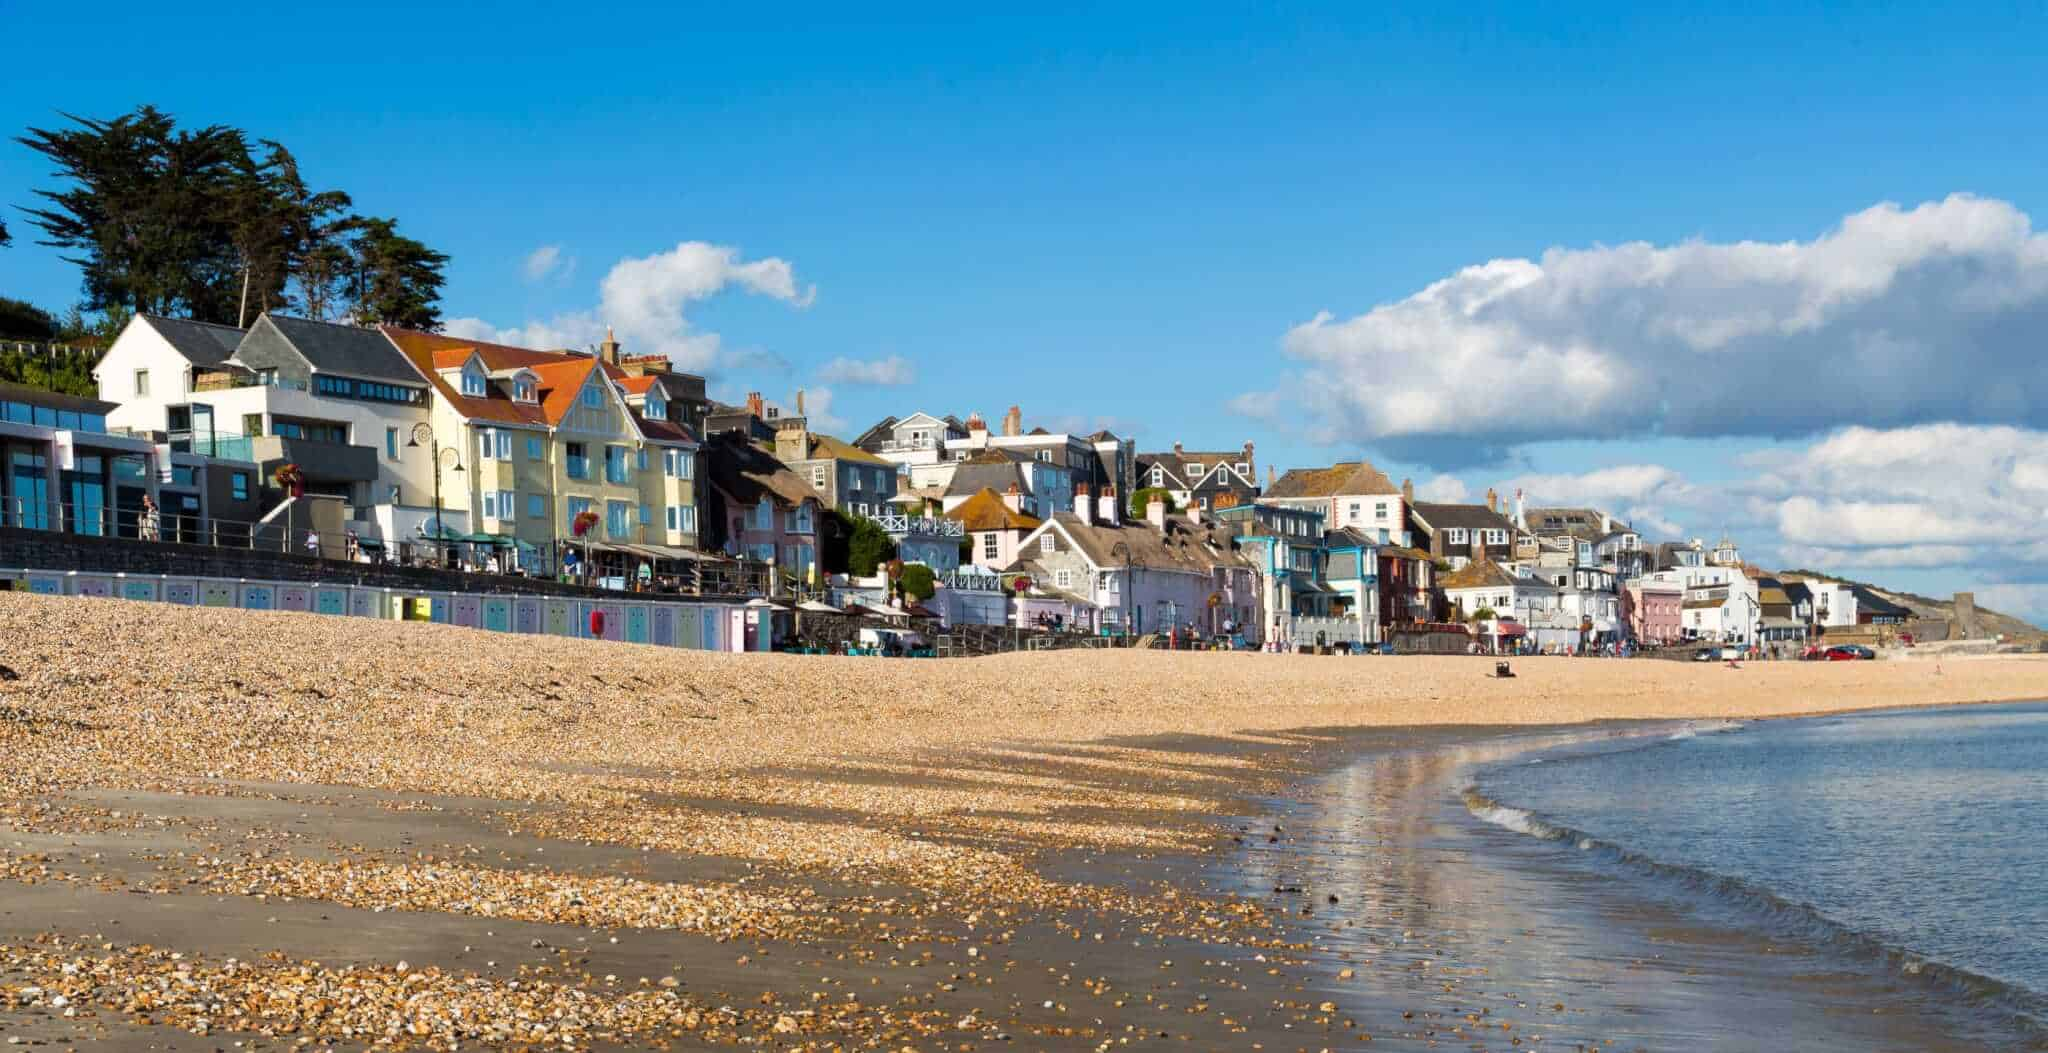 lyme regis accommodation homepage image